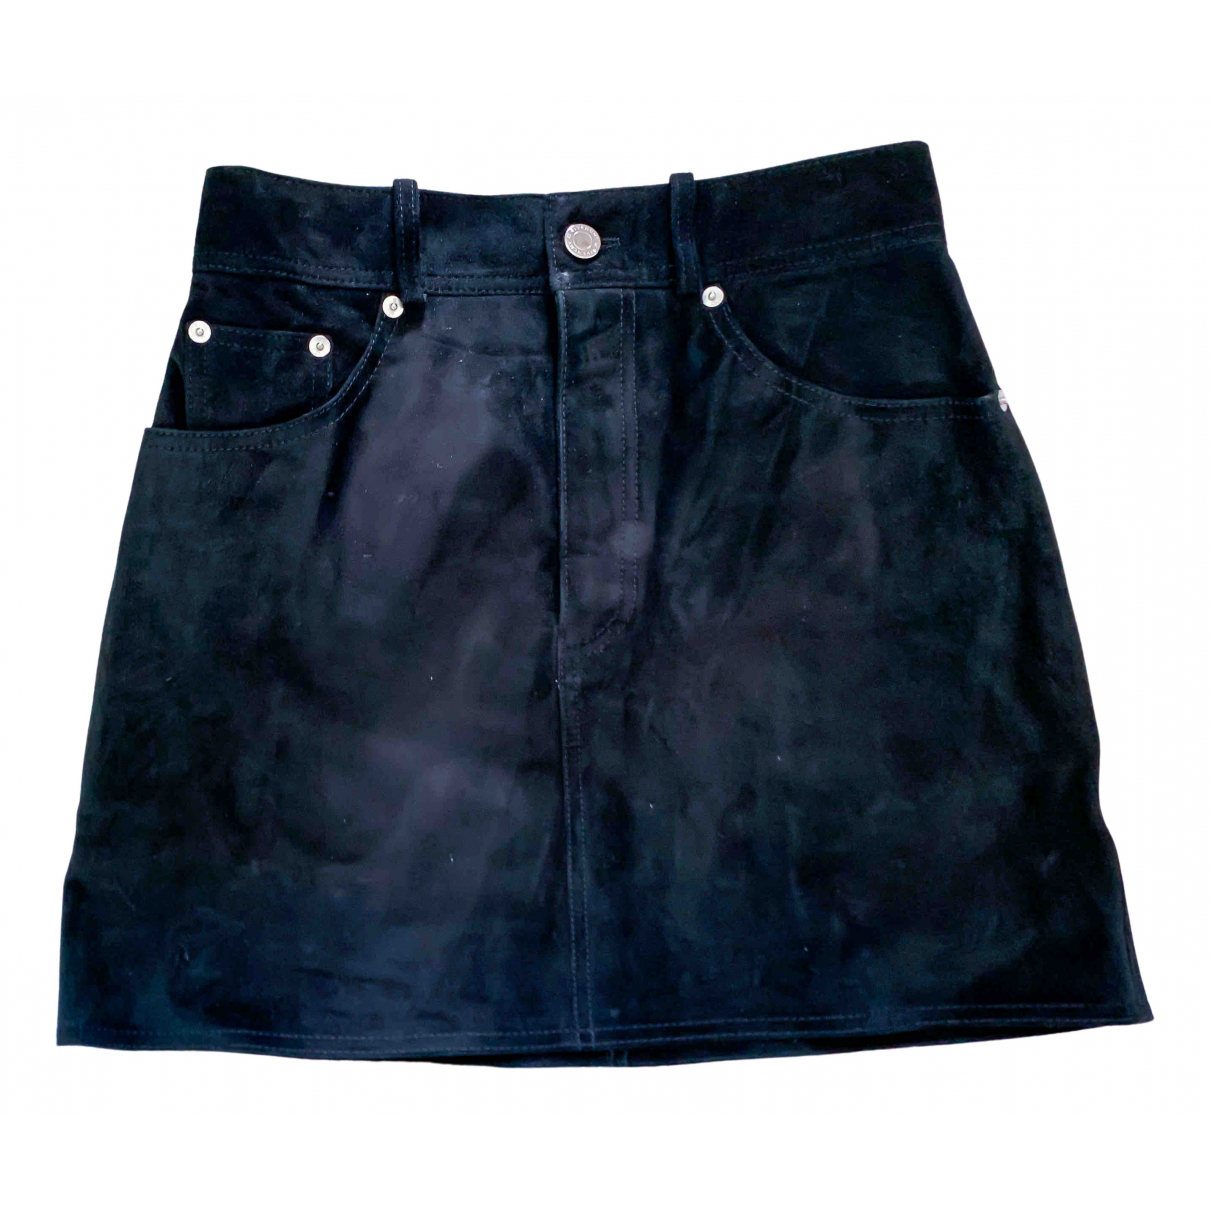 Givenchy \N Black Leather skirt for Women 34 FR